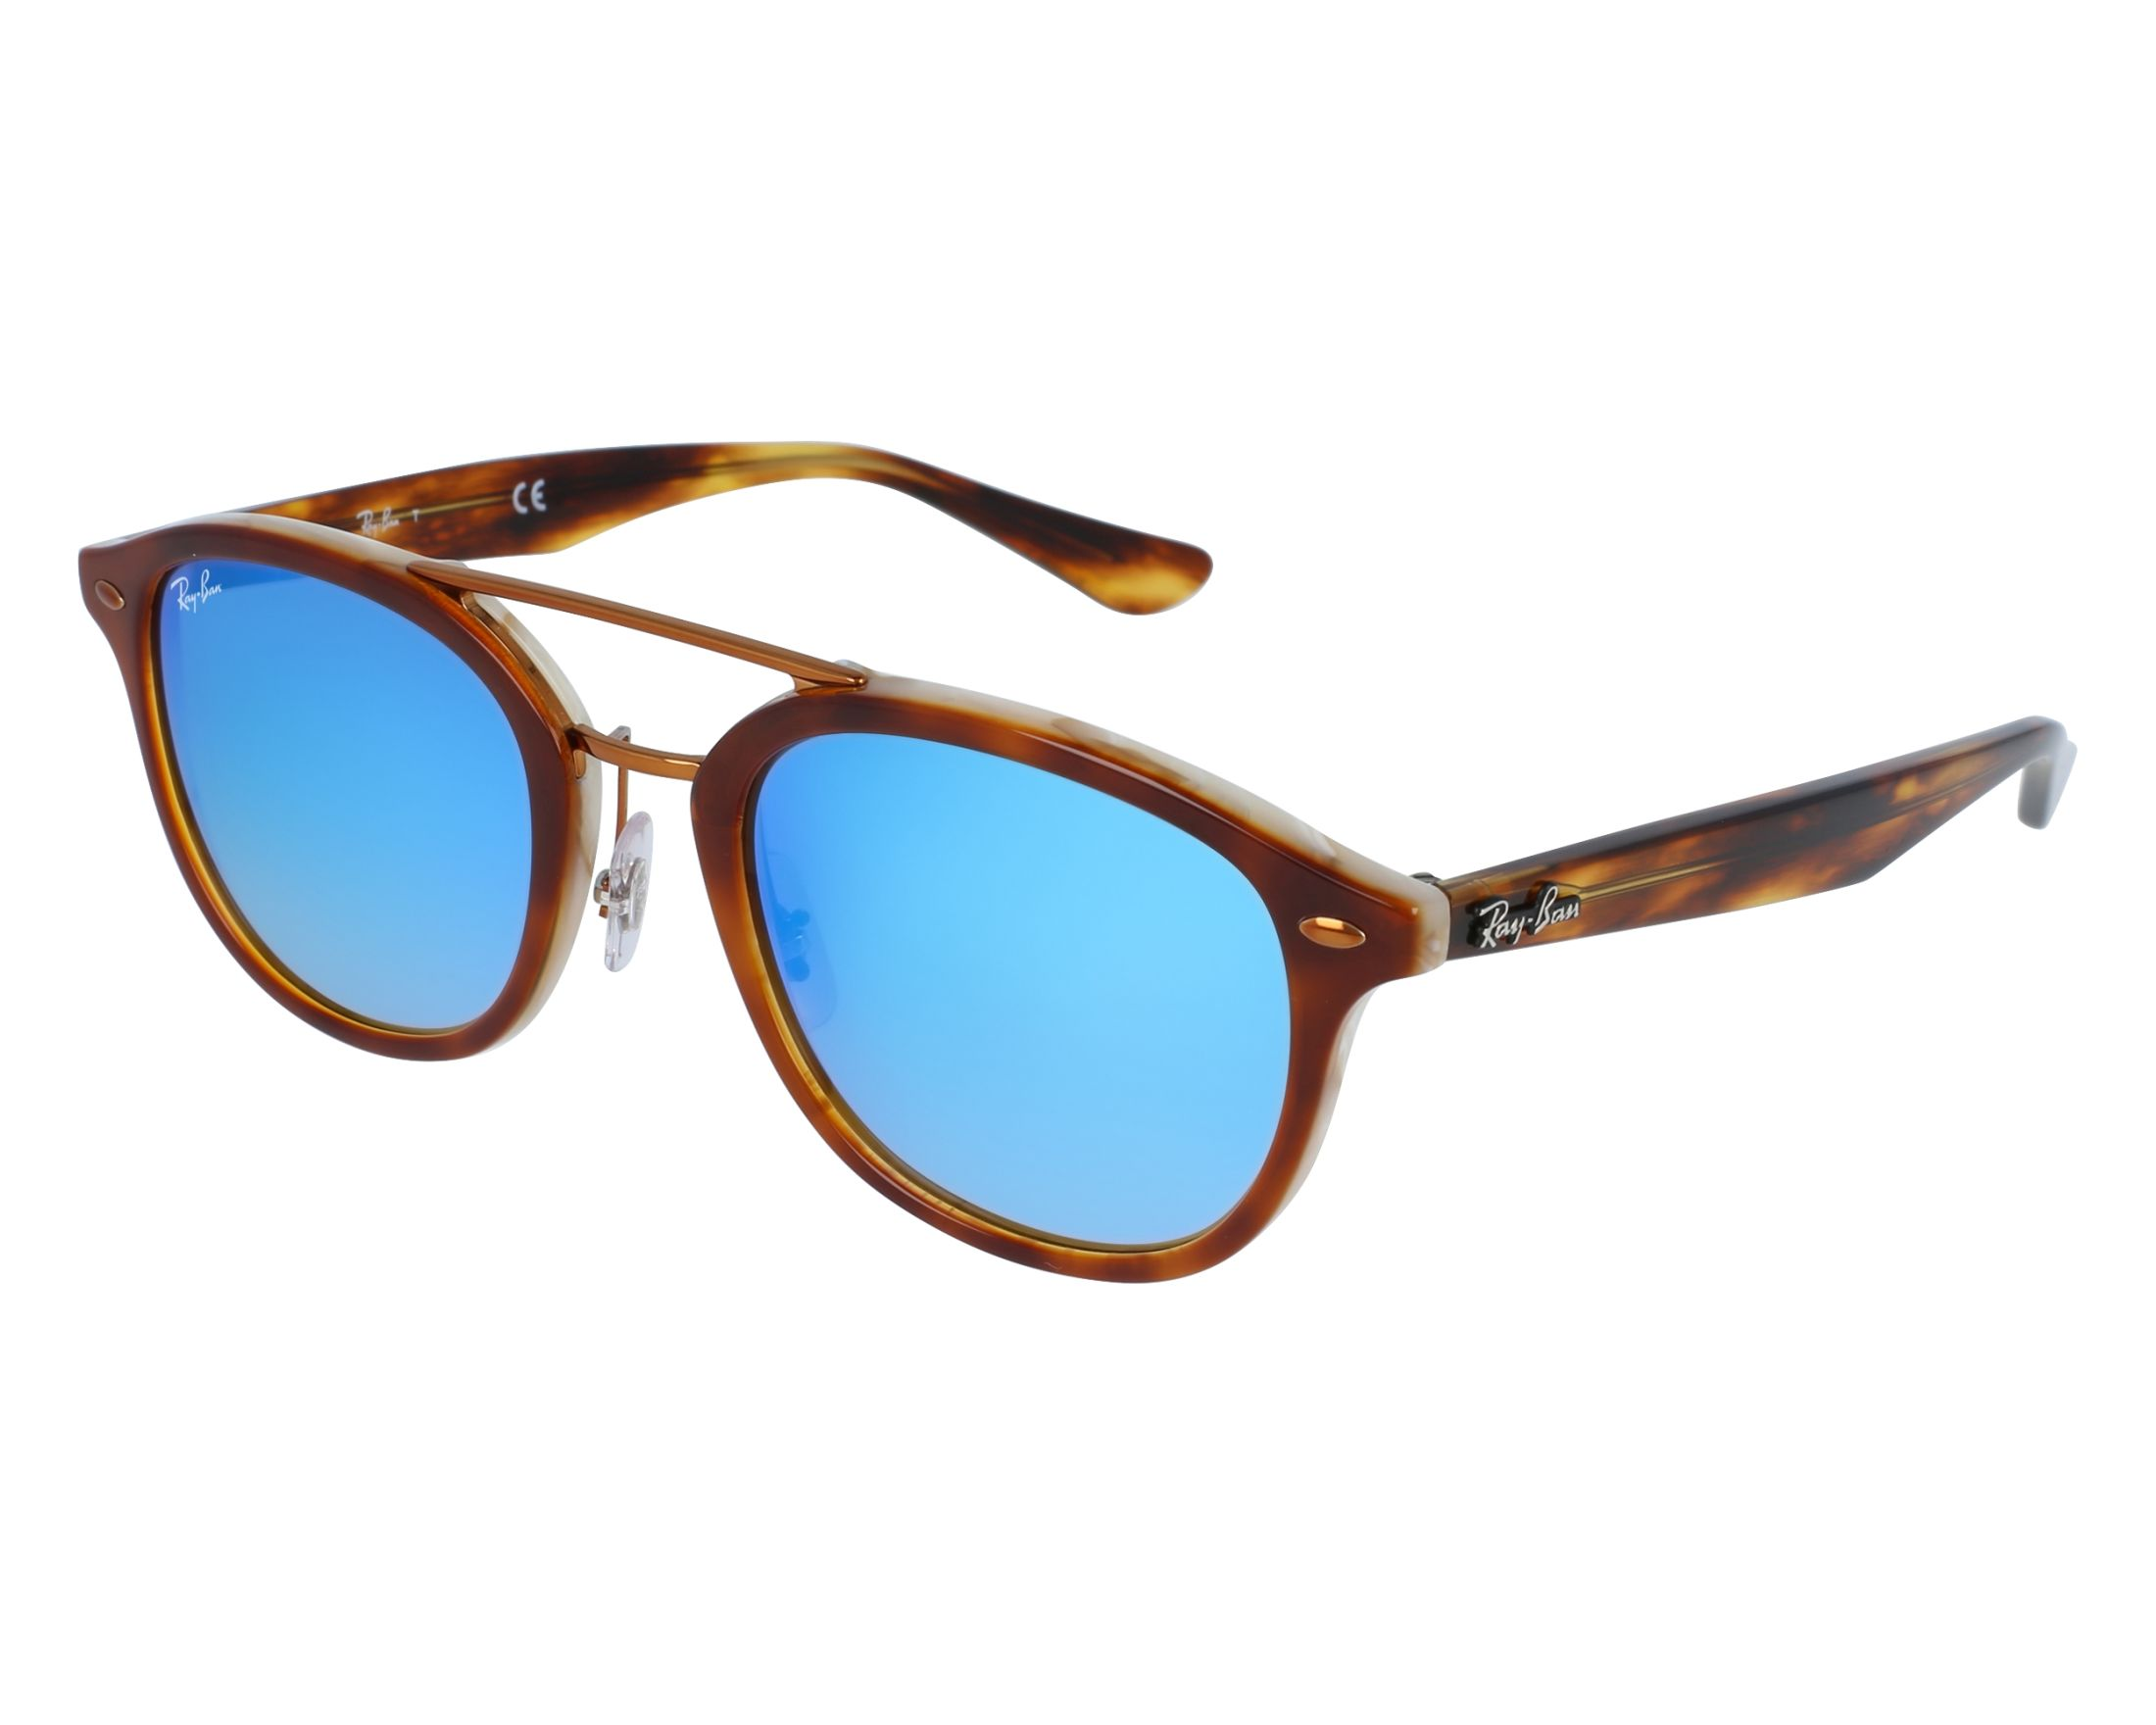 ae006c5c27 Sunglasses Ray-Ban RB-2183 1128B7 - Brown Havana front view